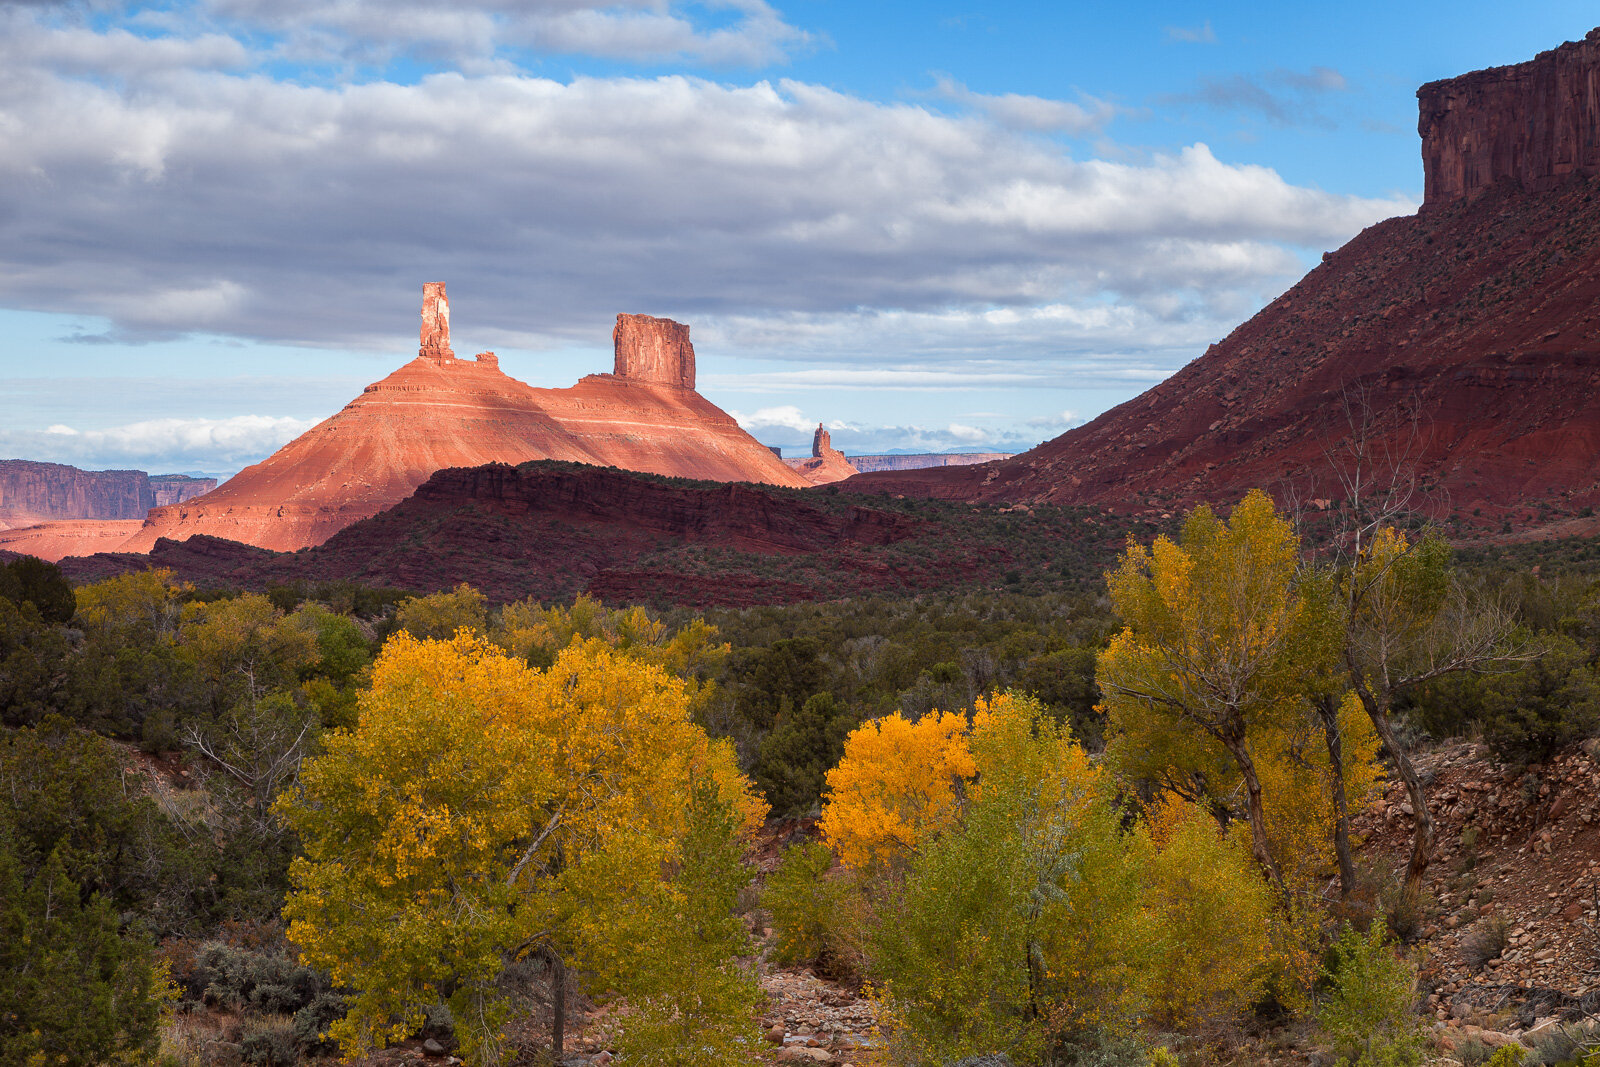 Cottonwood trees lining an unnamed creek show off the colors of fall below the iconic spires of Castleton Tower and the Priest and Nuns in Castle Valley, Utah.